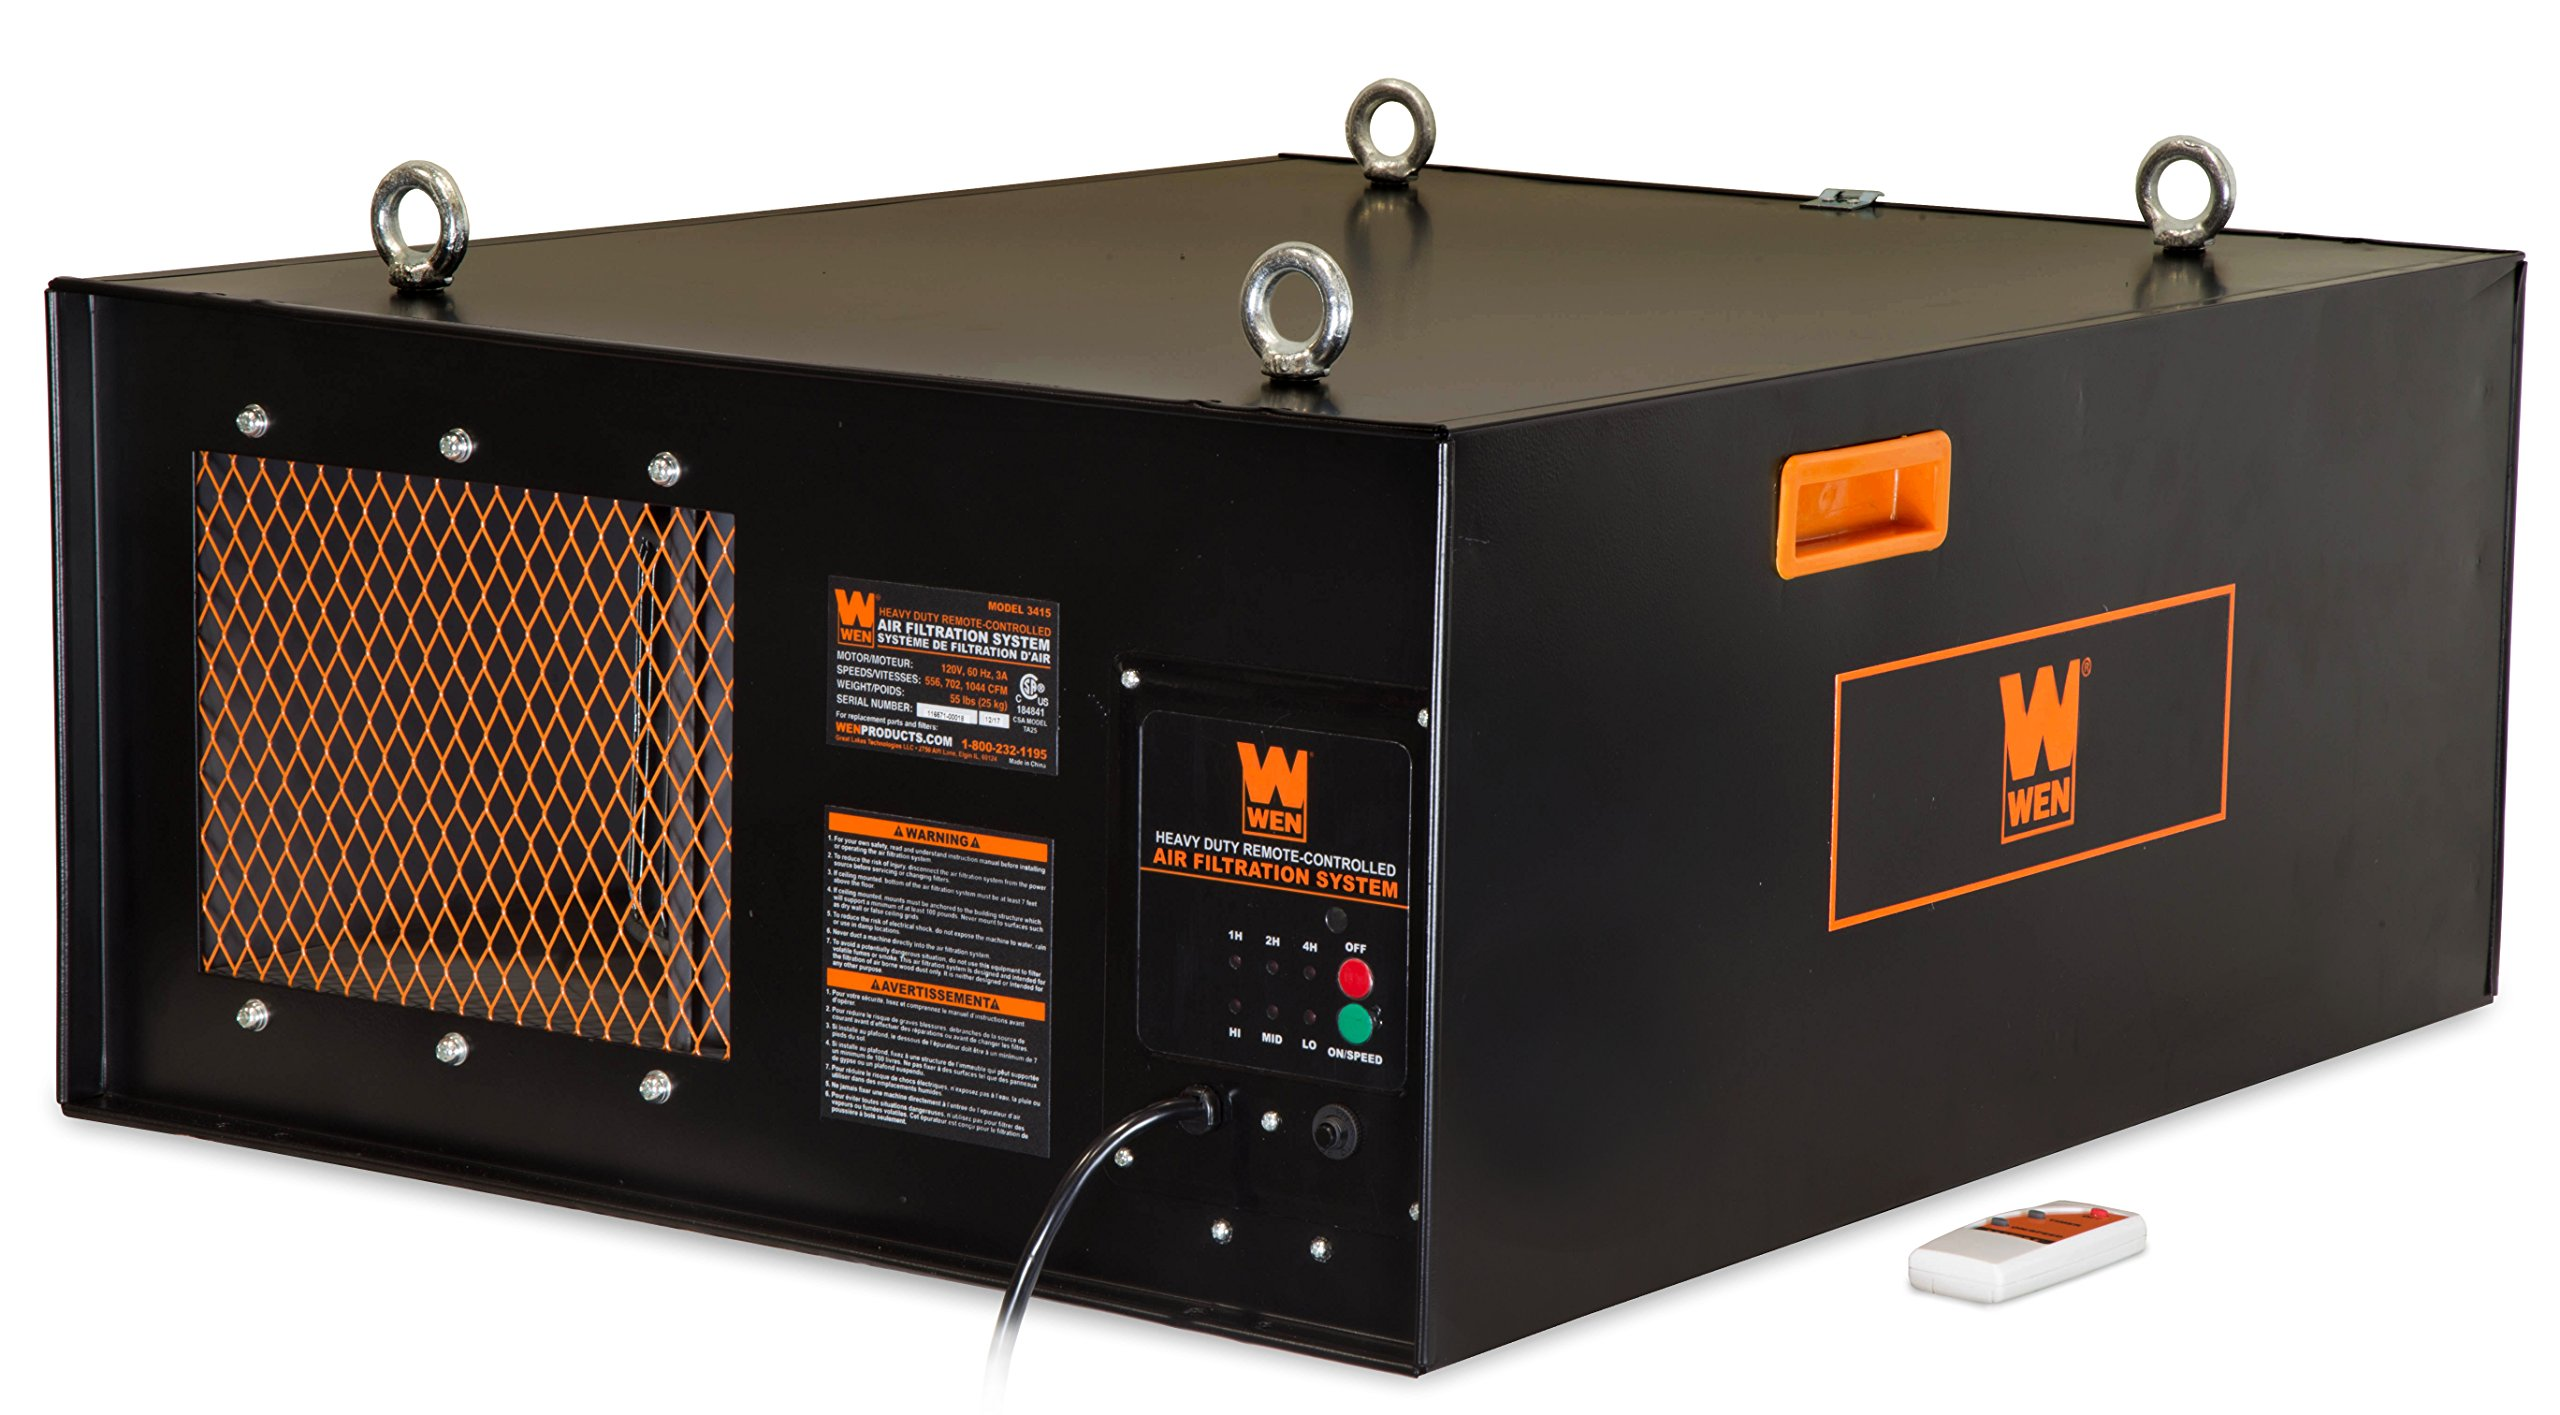 WEN 3415 3-Speed Remote-Controlled Industrial-Strength Air Filtration System (556/702/1044 CFM)